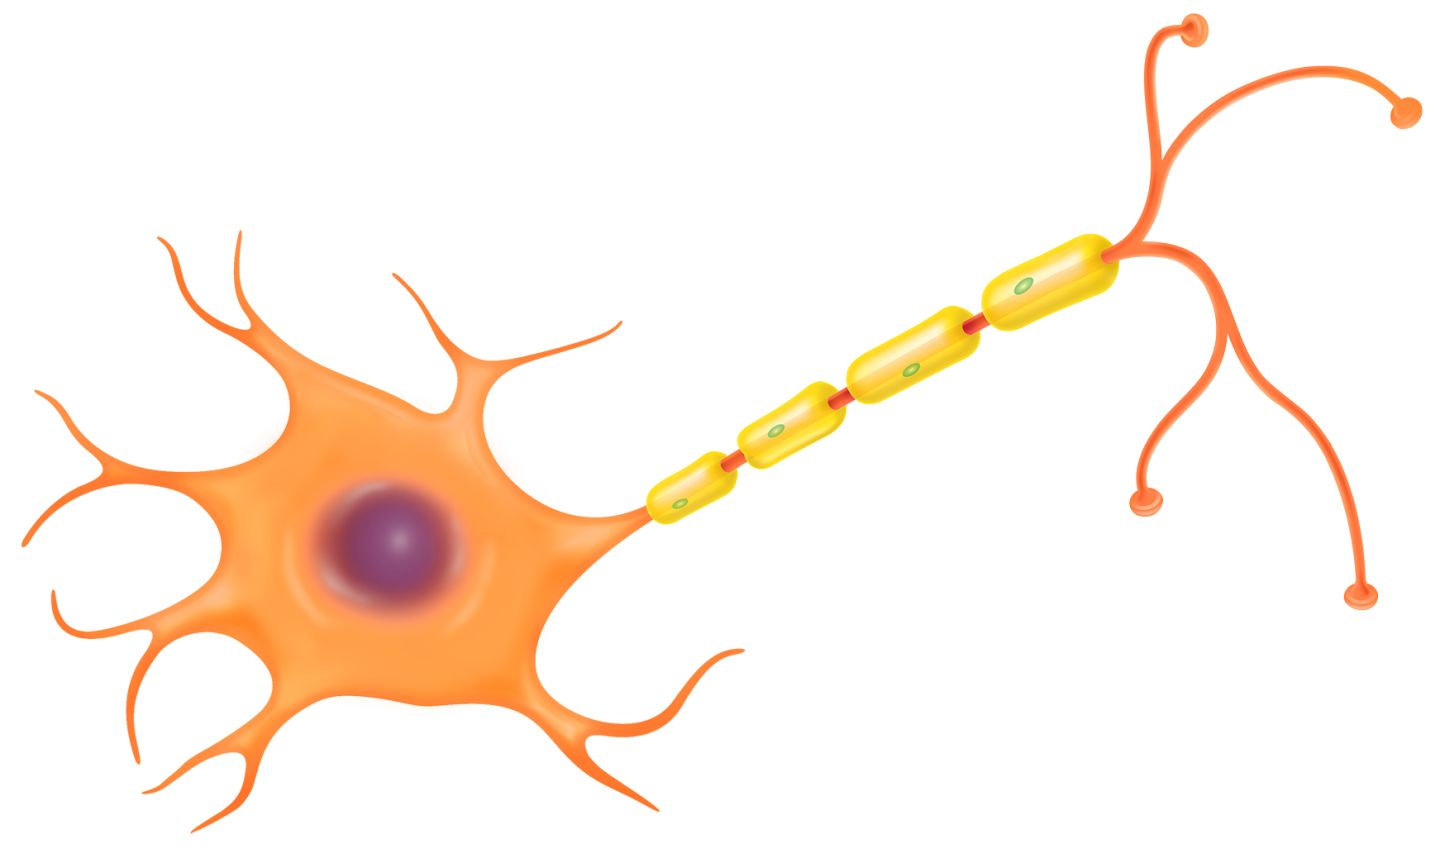 Nerve Cells Diagram - ClipArt Best